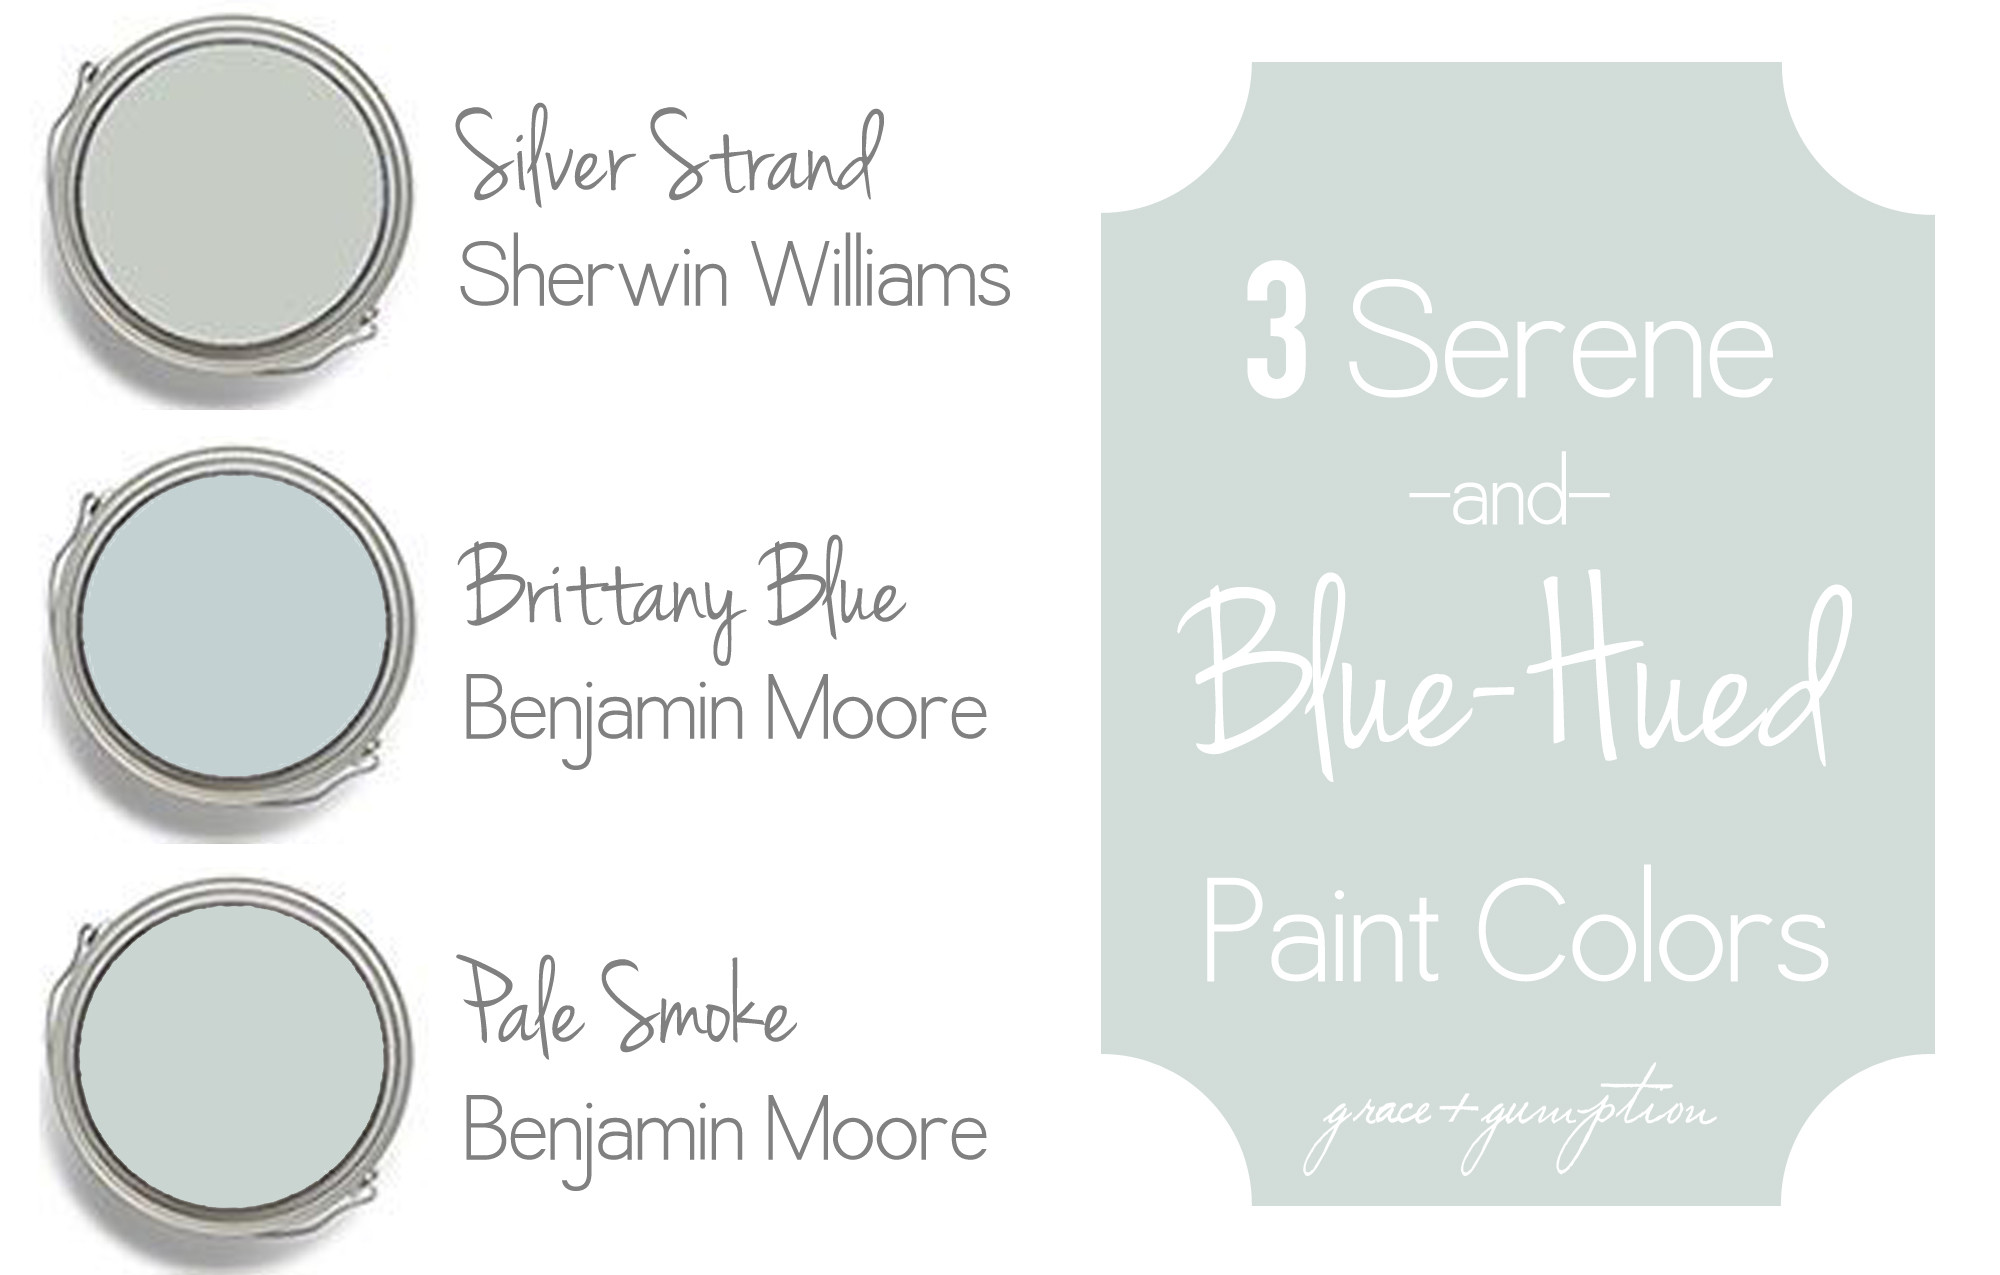 Best ideas about Joanna Gaines Favorite Paint Colors . Save or Pin Three Serene and Blue Hued Paint Colors Now.